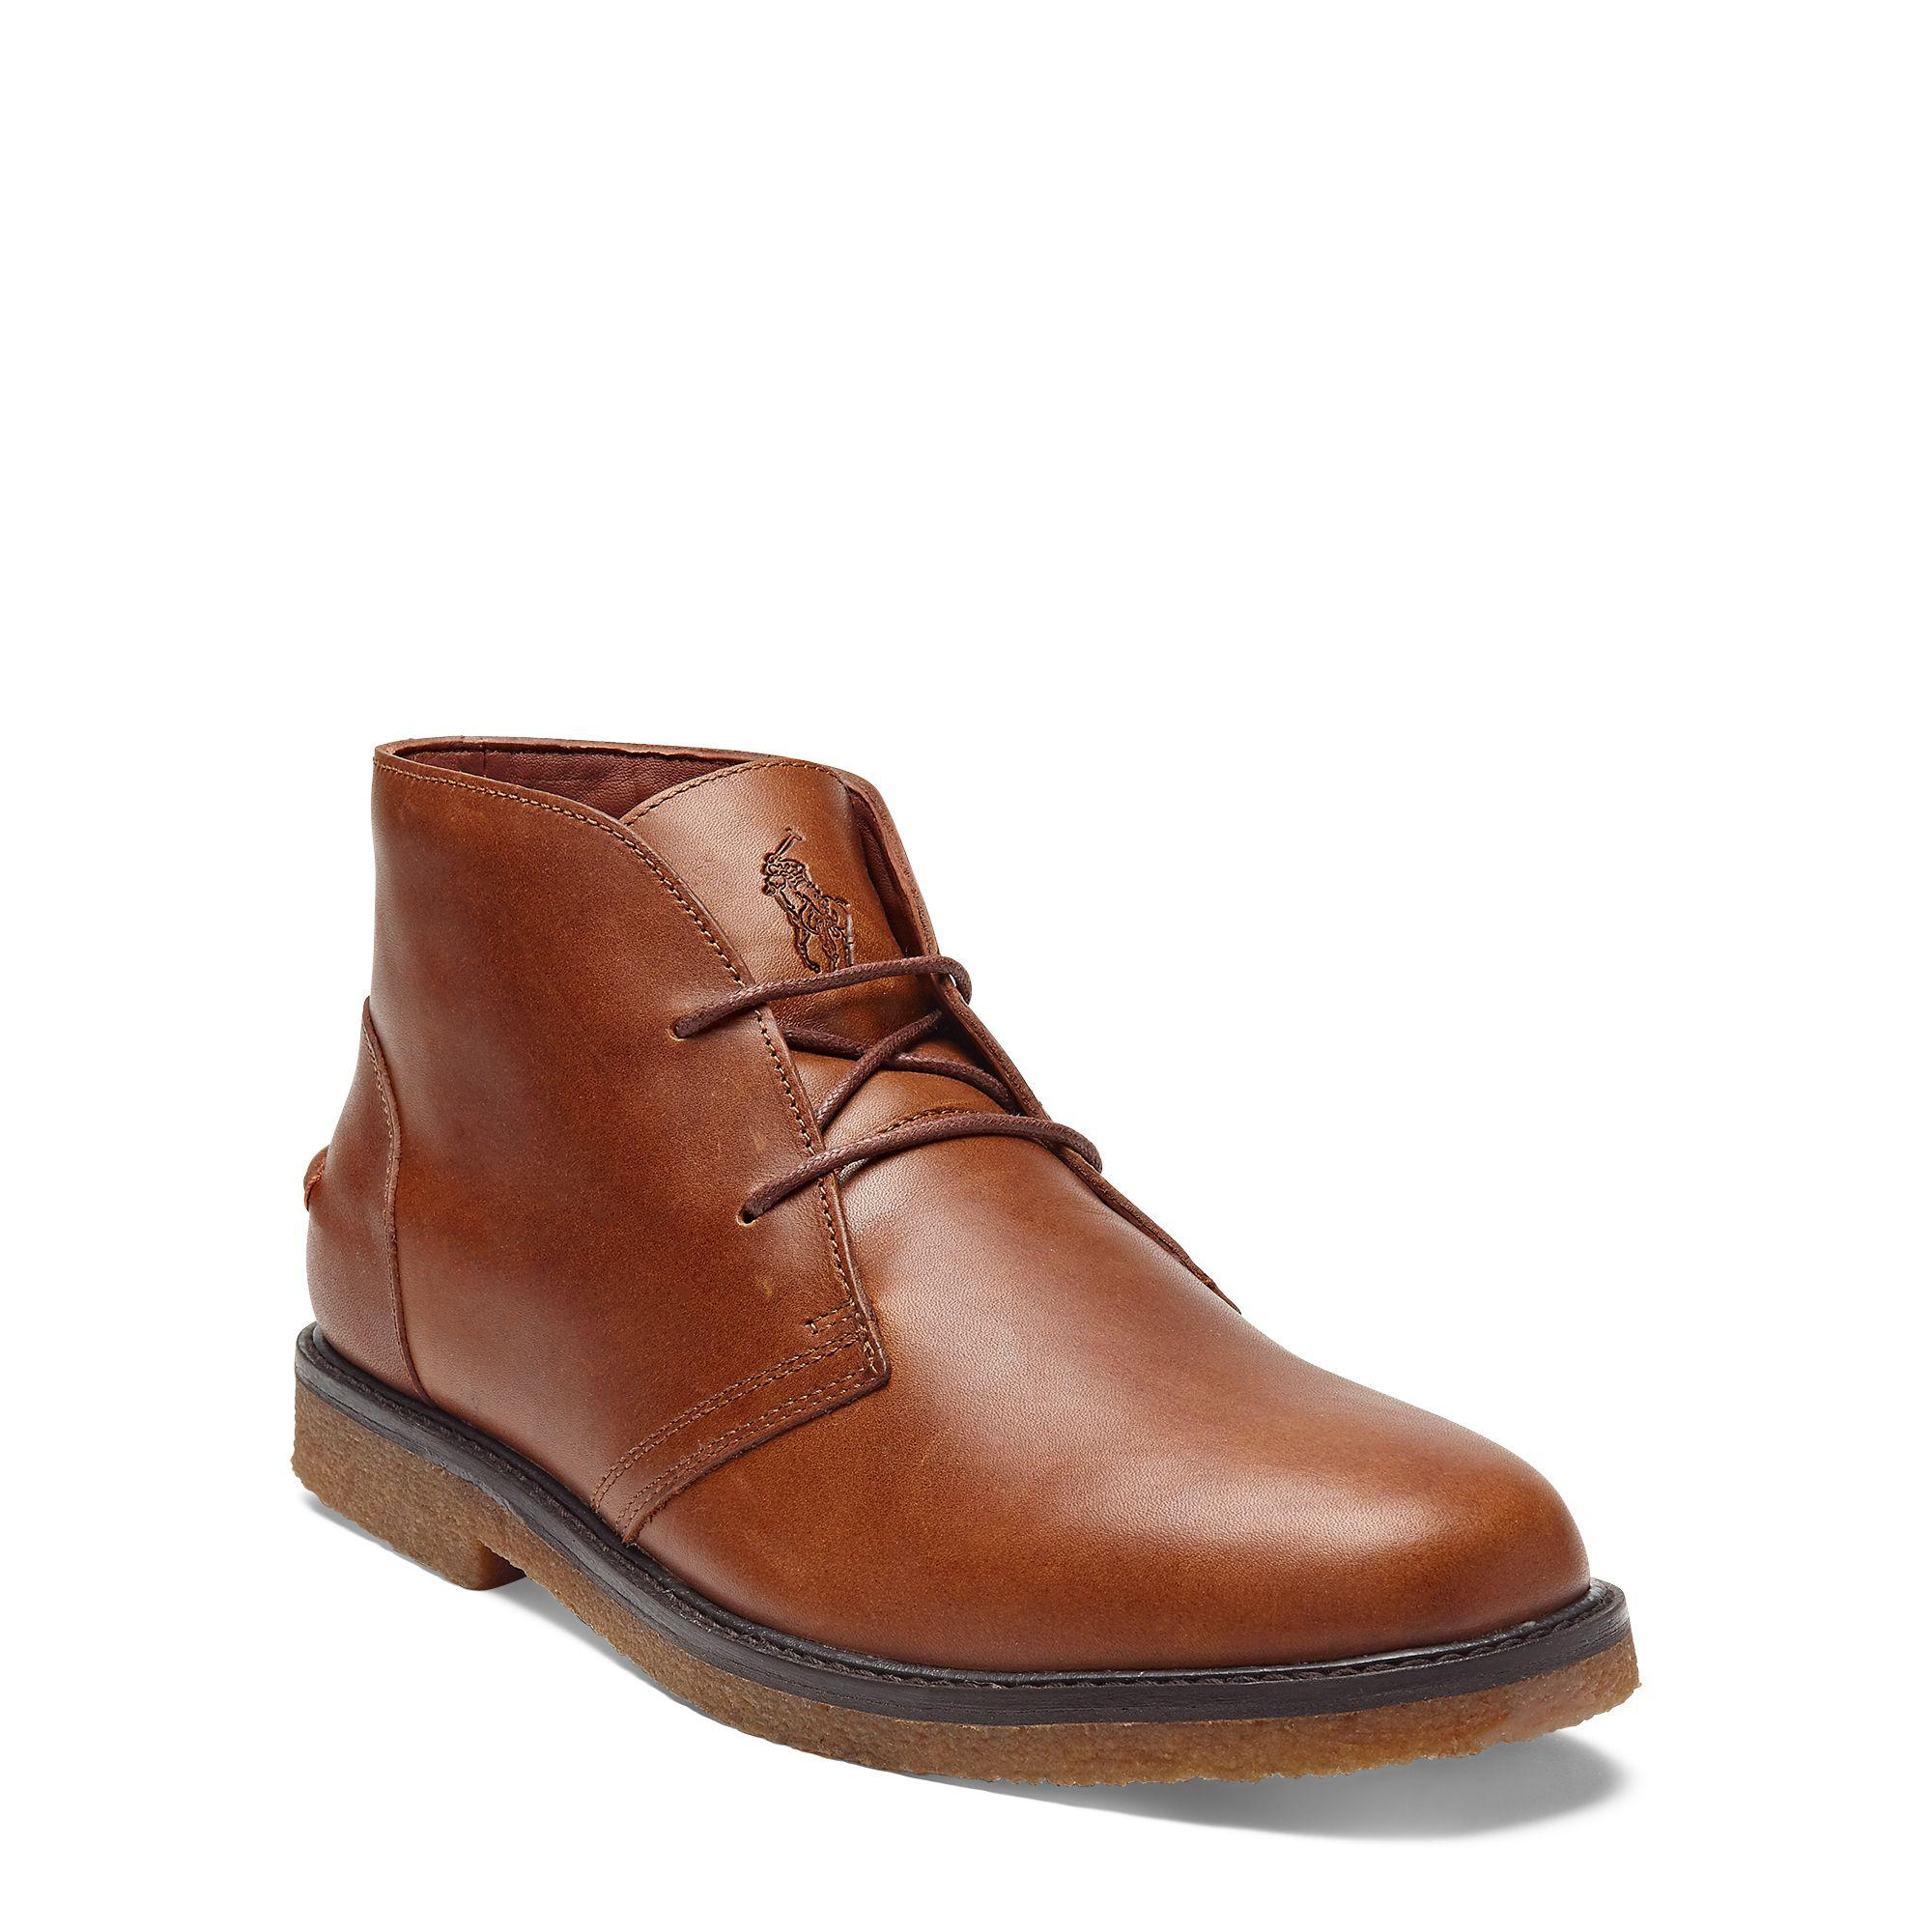 For Brown Men Polo Marlow Lauren Leather Ralph Boot In Lyst 7Ybf6gy